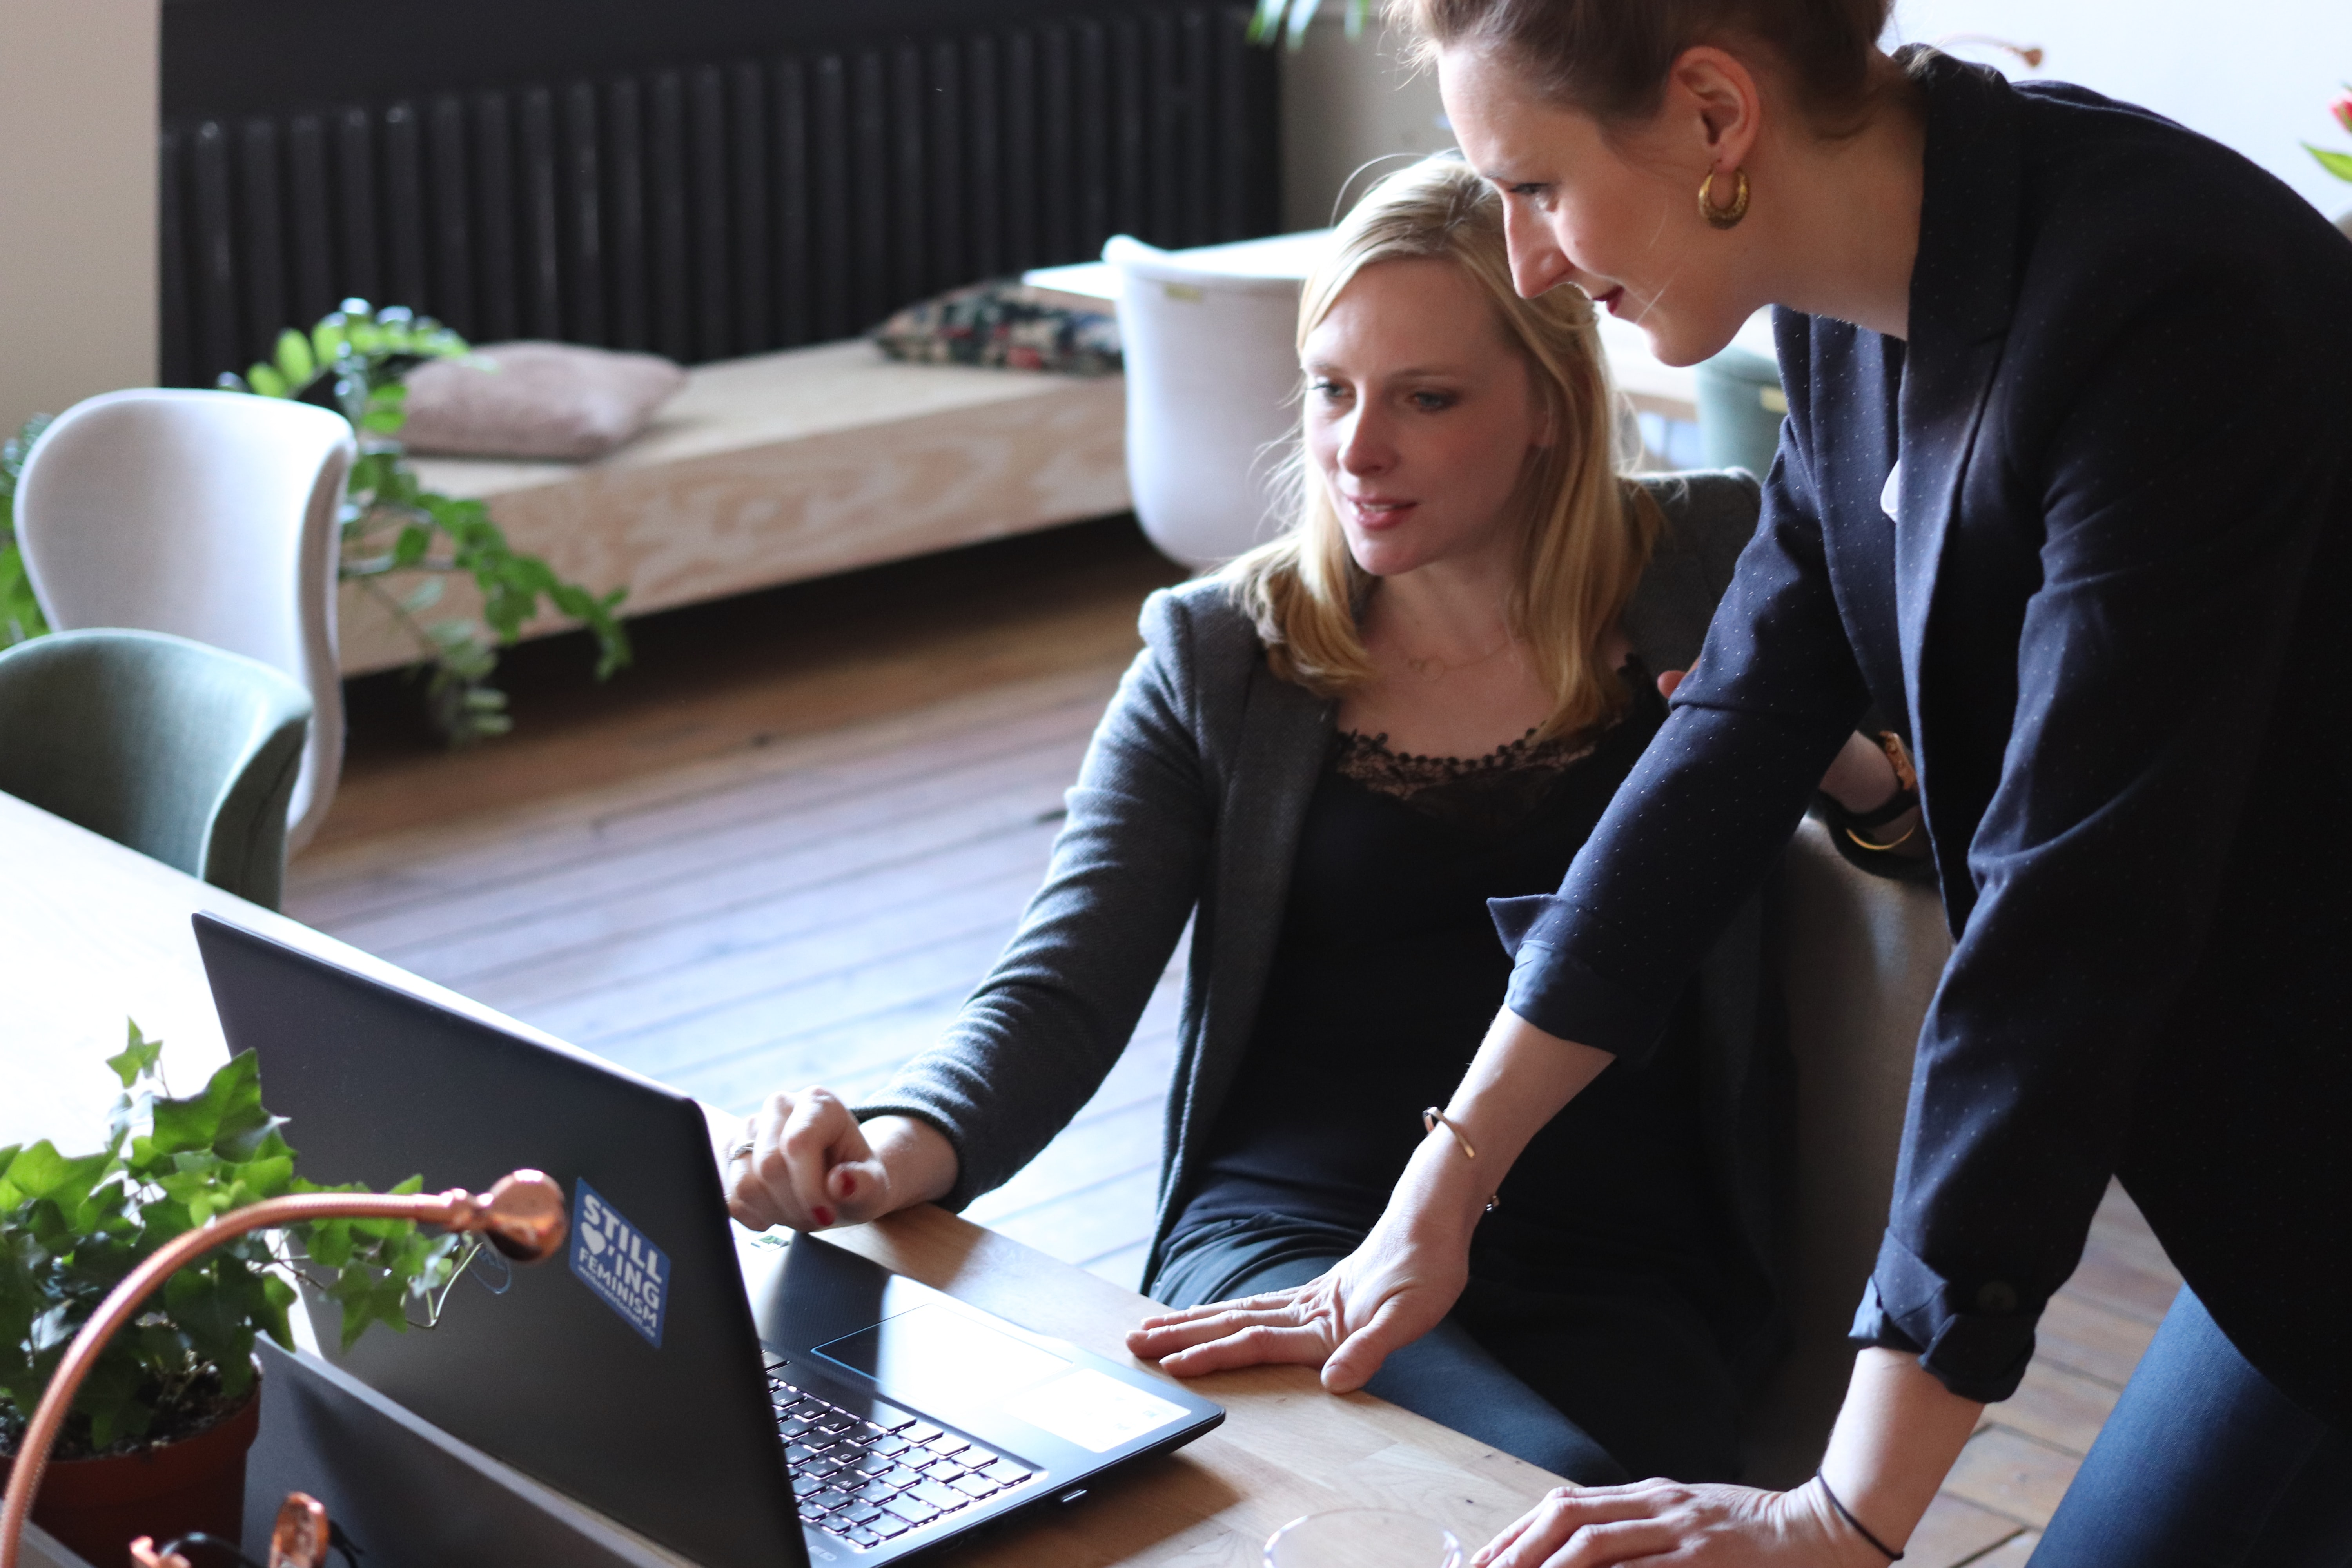 employee sharing laptop screen with coworker